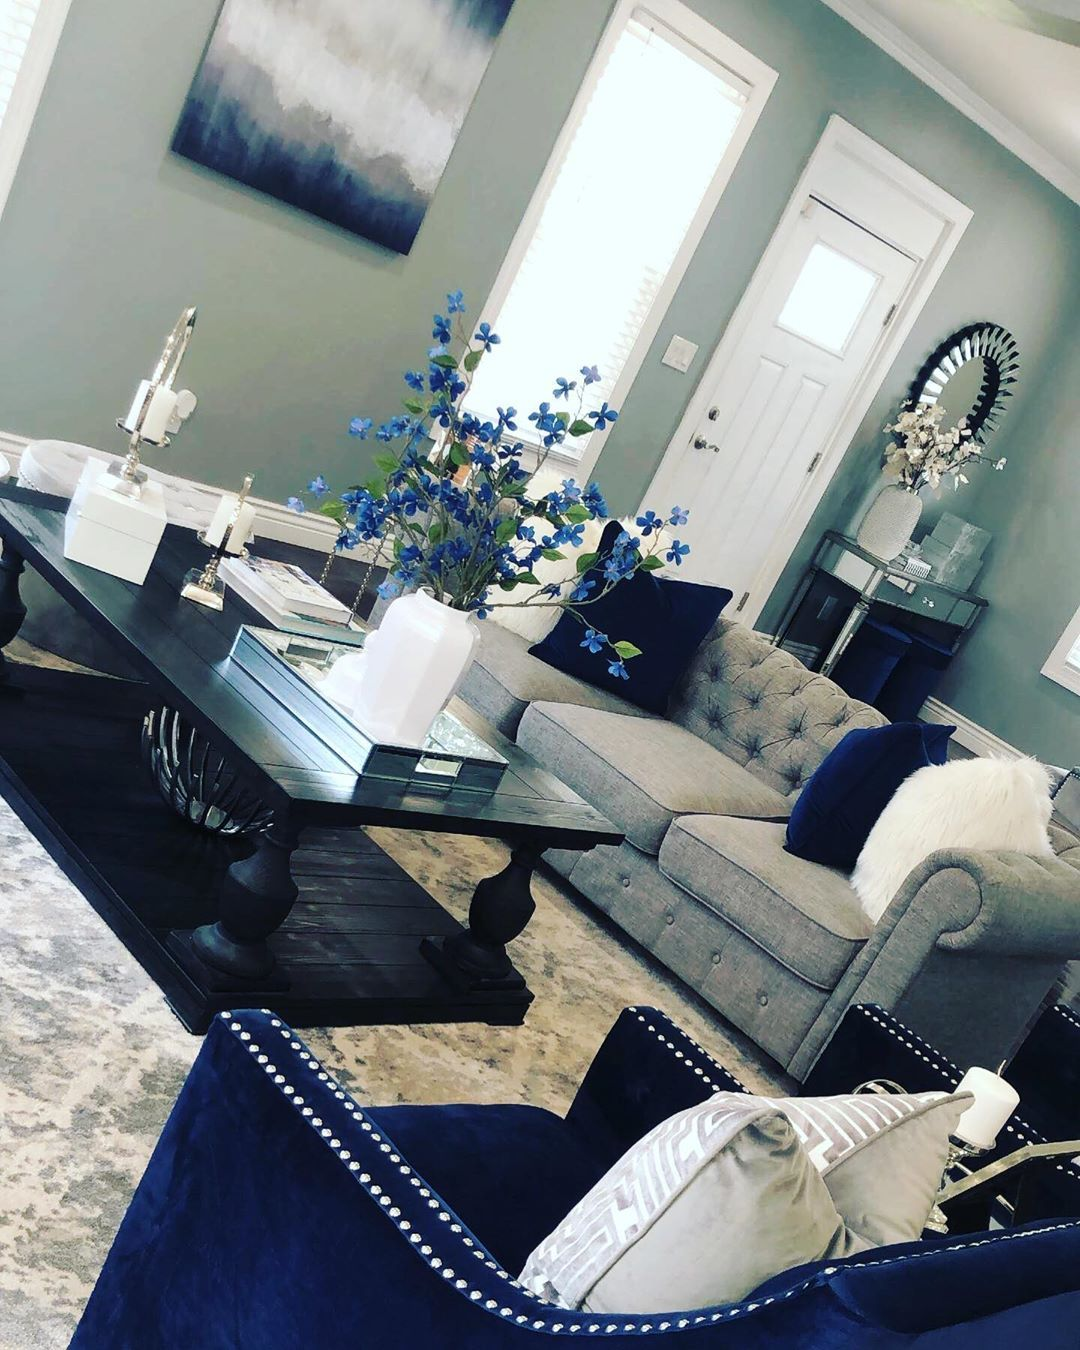 Jusminda On Instagram Happy Sunday Hope Everyone Had A Great Weekend Living Room Decor Grey And Blue Living Room Decor Apartment Living Room Decor Gray